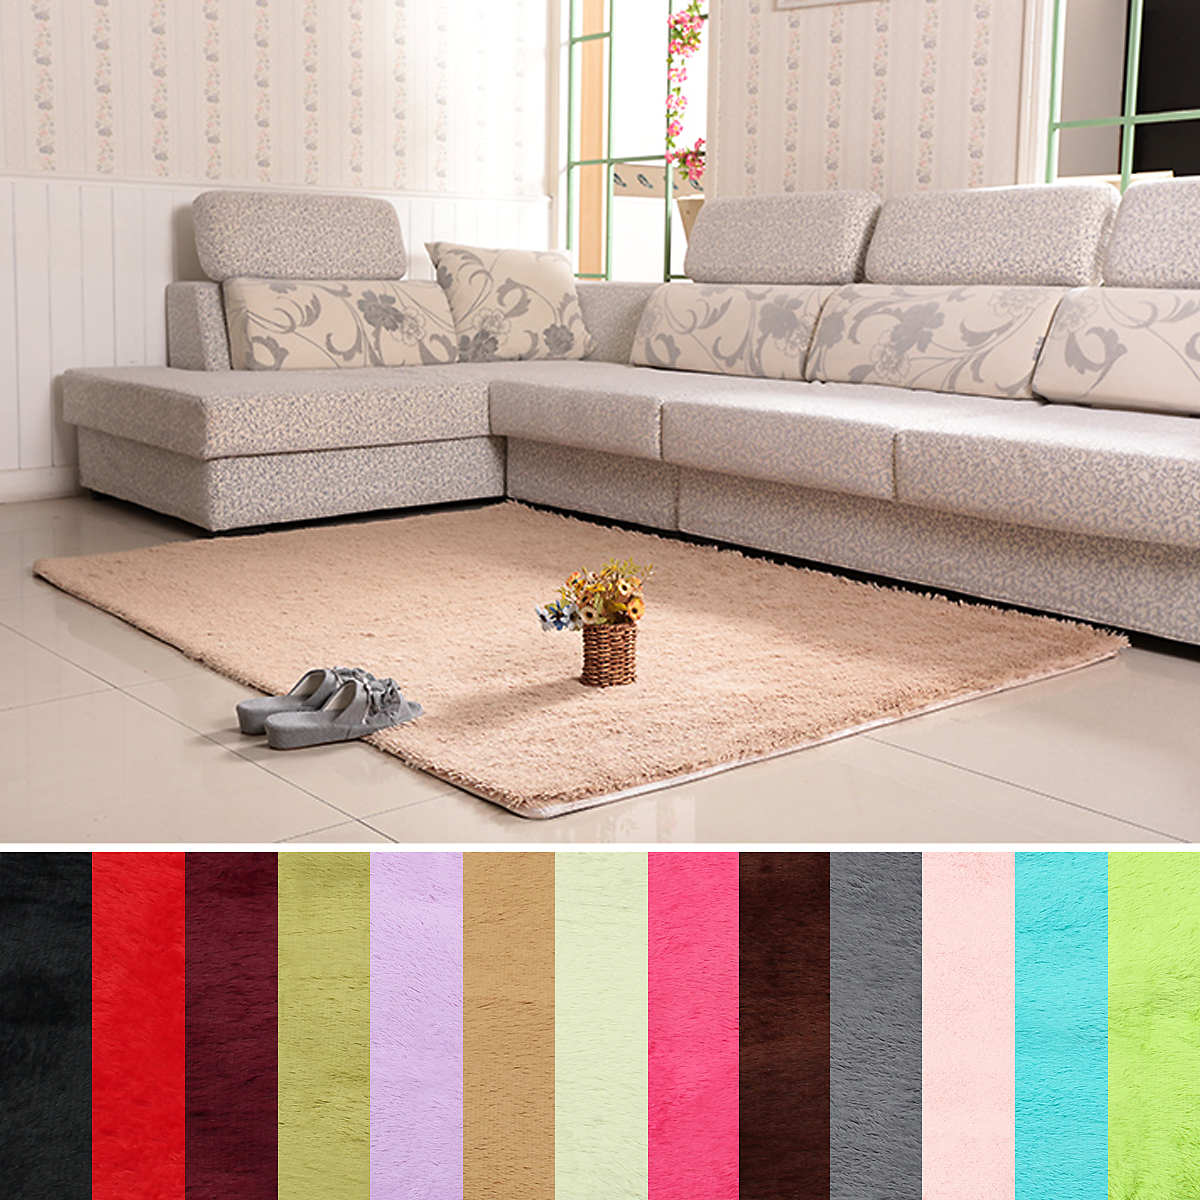 63x47 2 Quot Inch Anti Skid Shaggy Fluffy Area Rug Bedroom